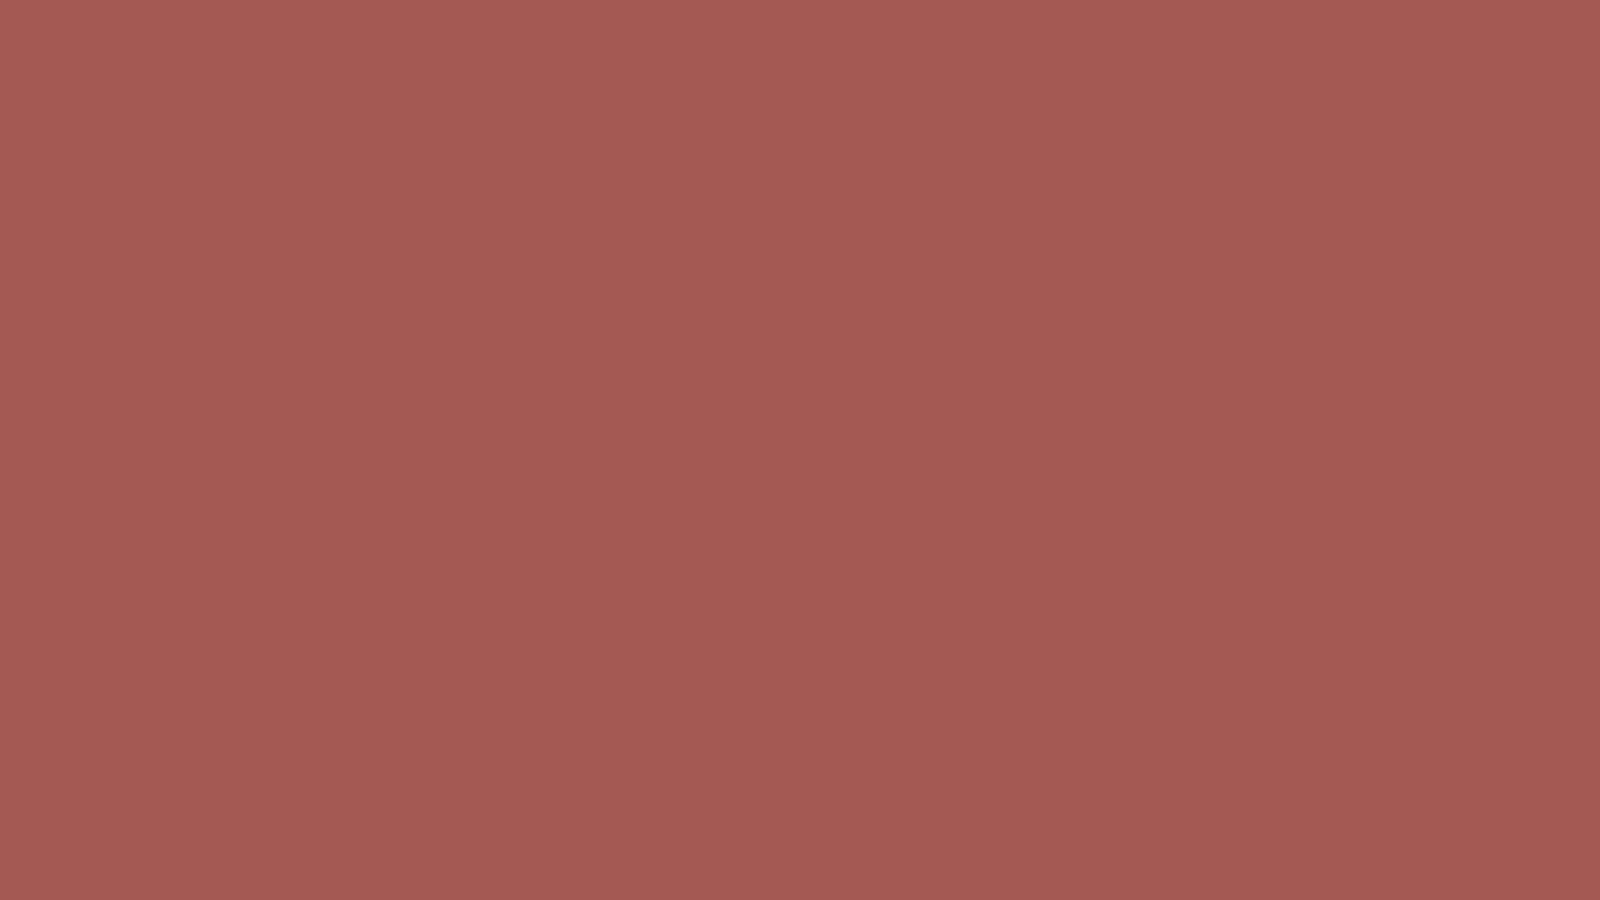 1600x900 Redwood Solid Color Background